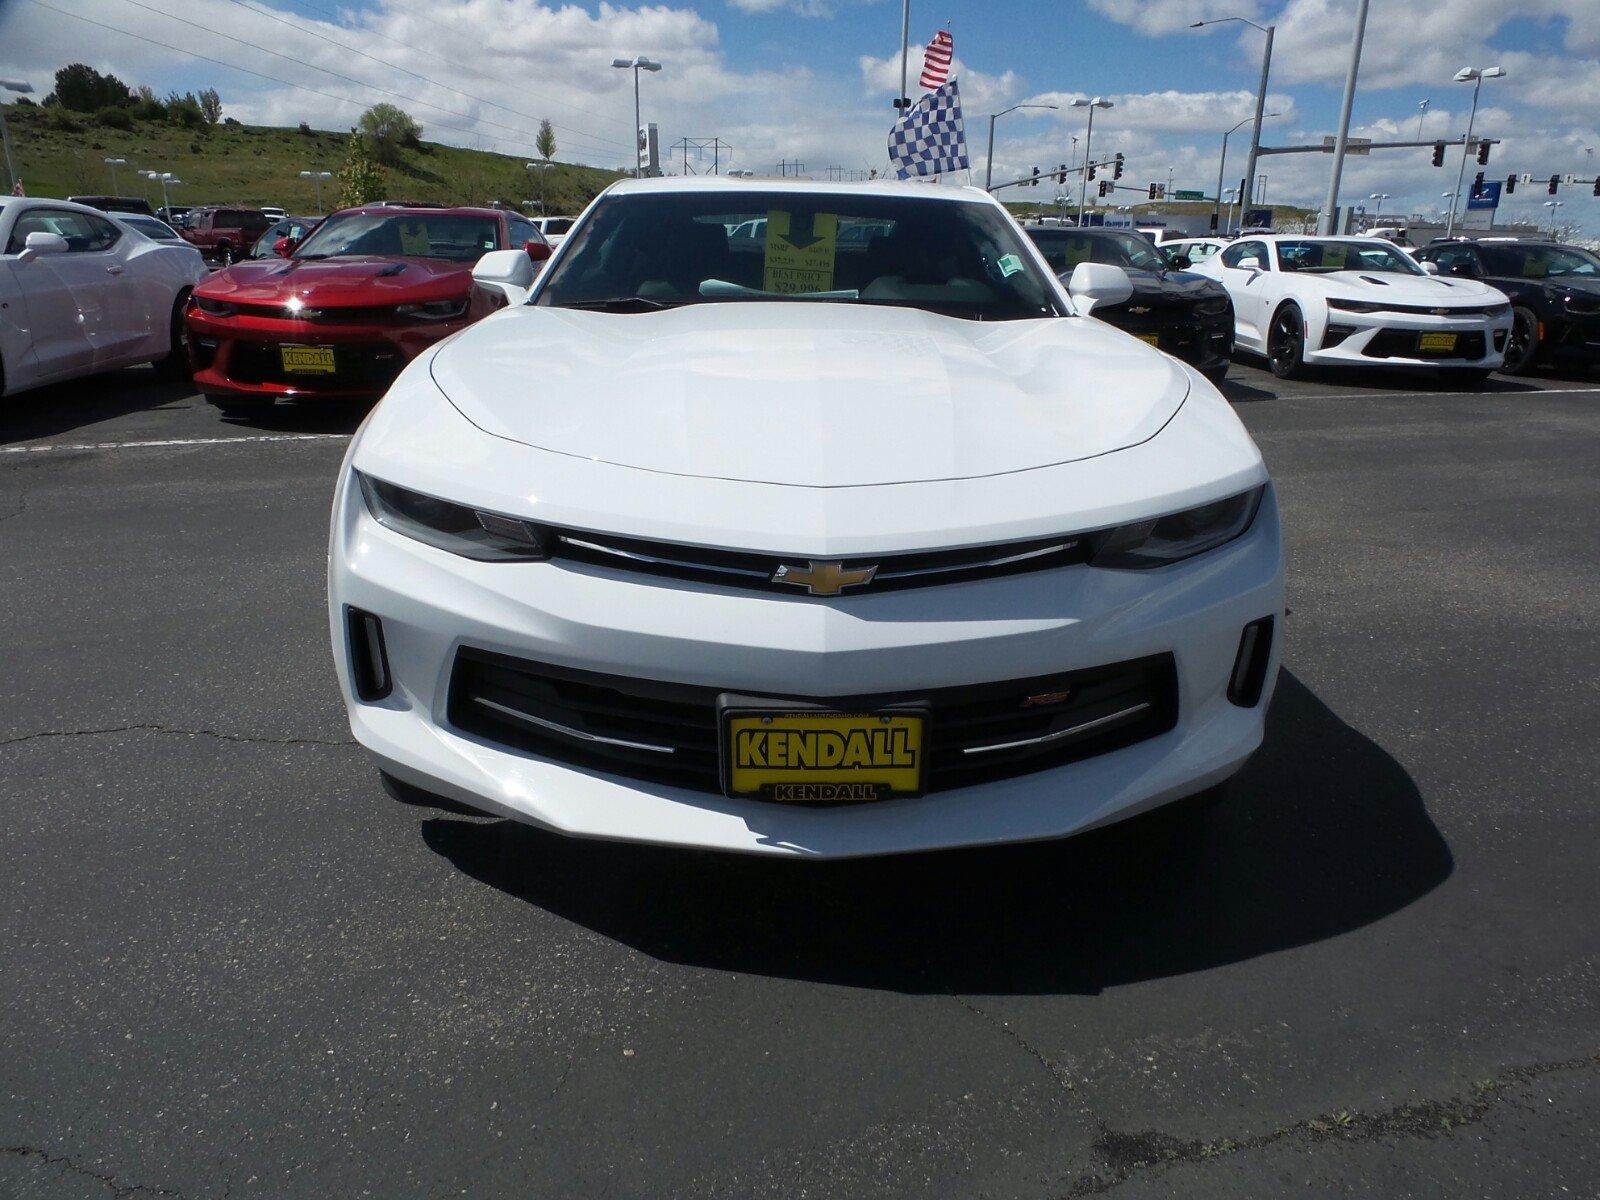 new 2017 chevrolet camaro lt in nampa 170016 kendall at the idaho center auto mall. Black Bedroom Furniture Sets. Home Design Ideas